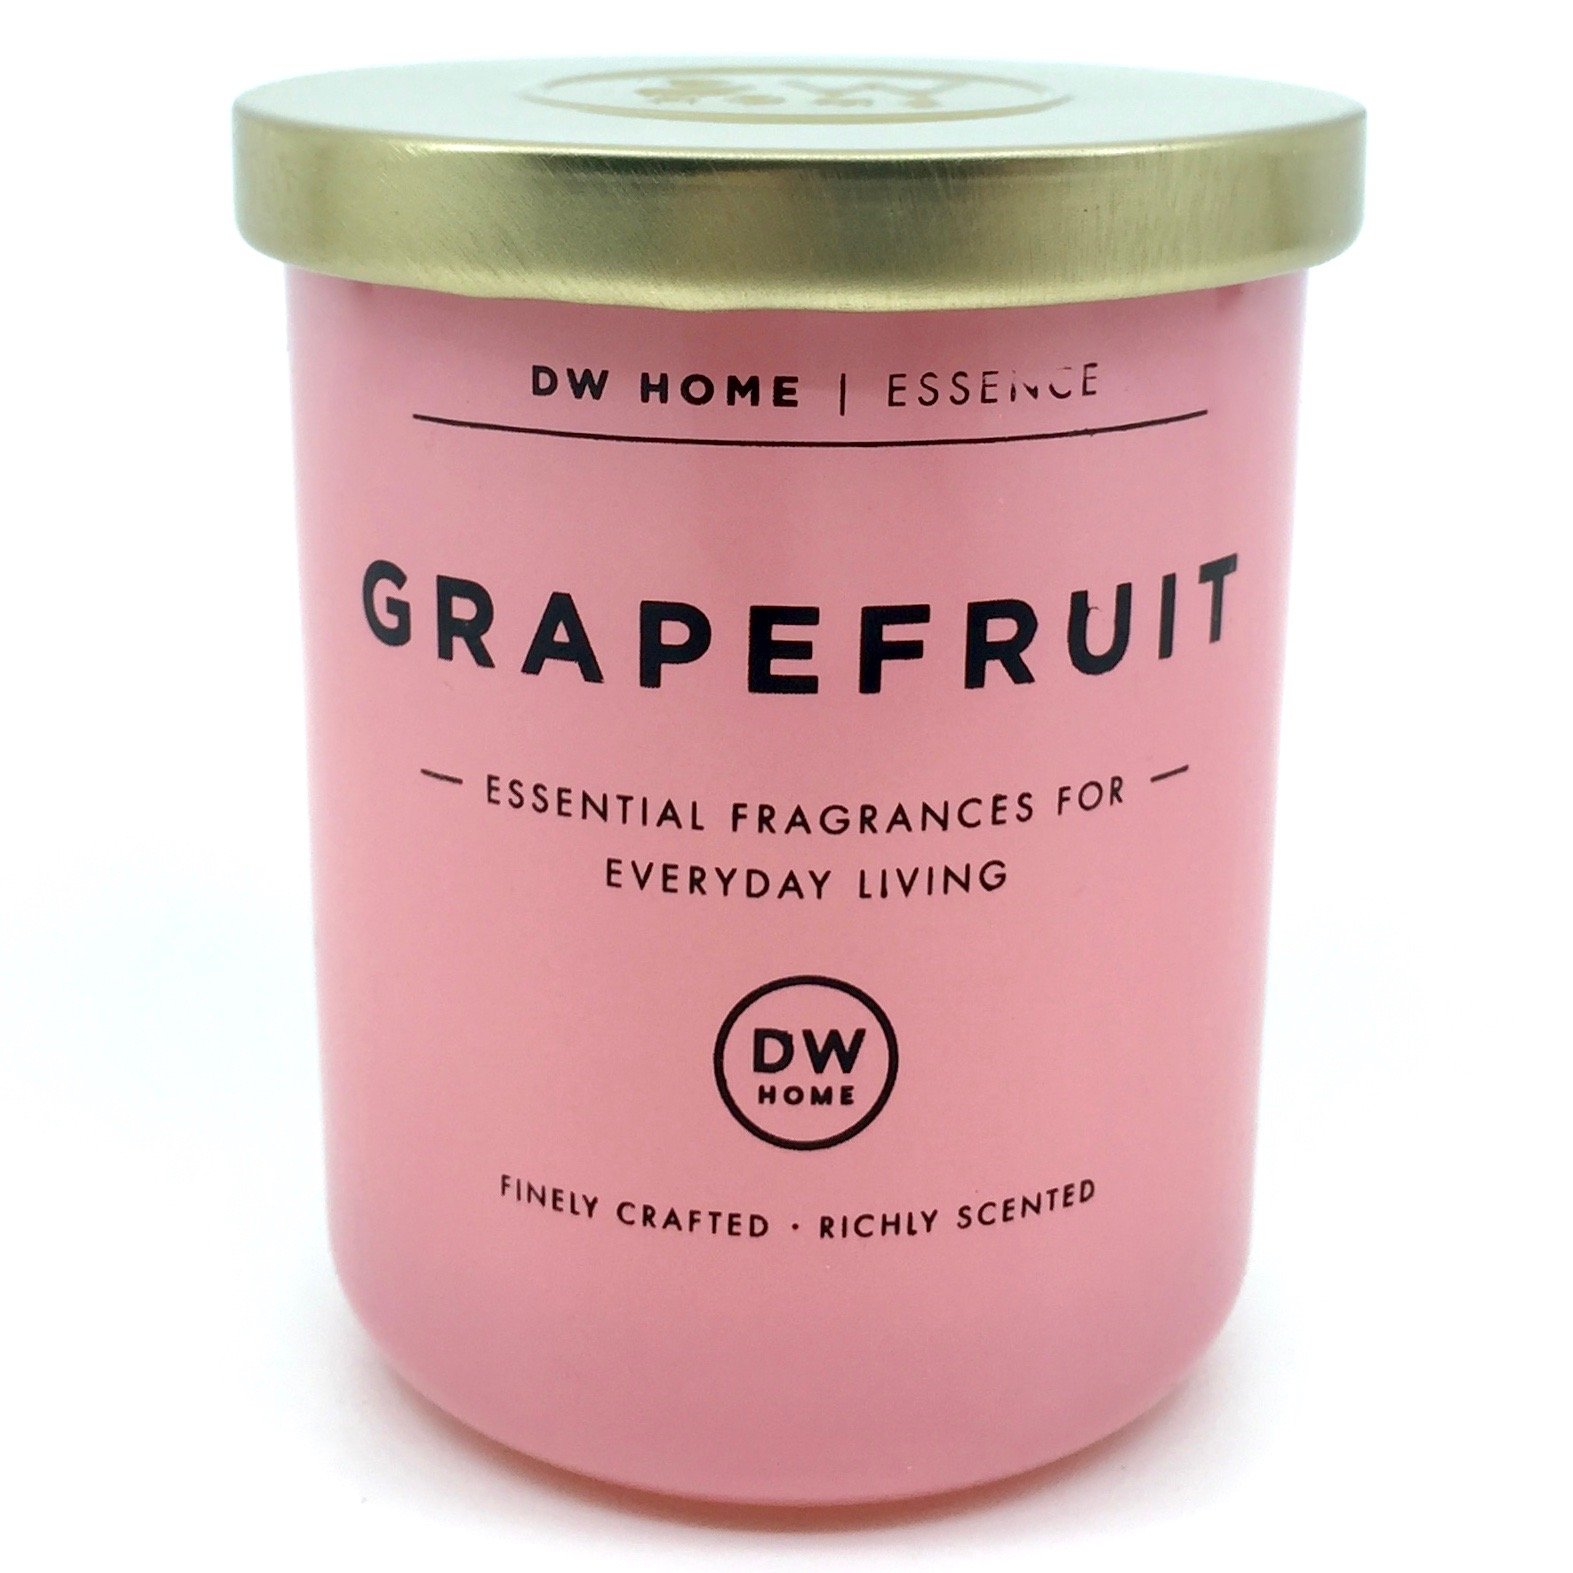 Small DW Home Grapefruit Scented Soy Wax Blend Candle Essential Fragrances For Everyday Living